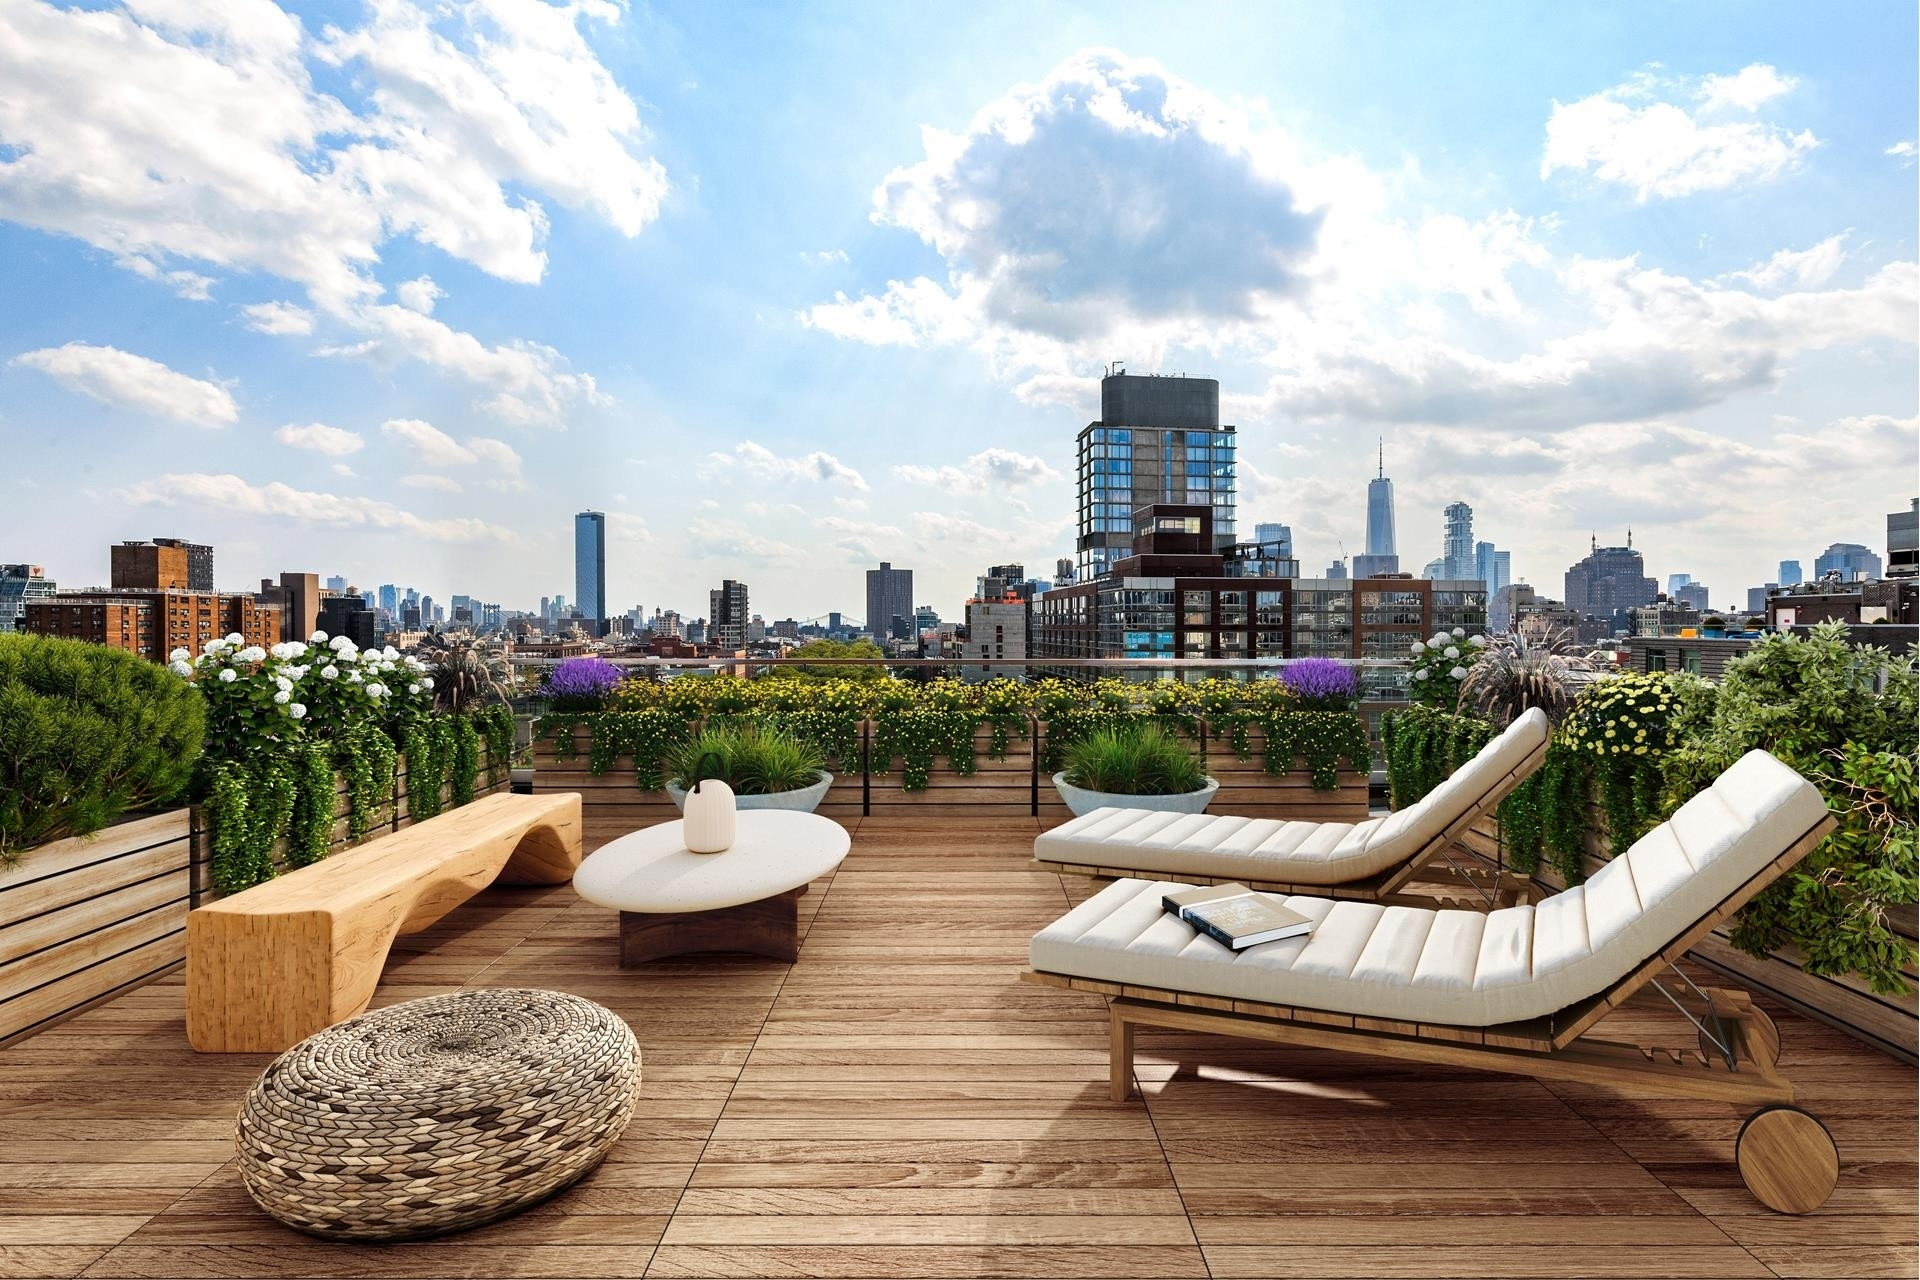 Condominium for Sale at 32 E 1ST ST , PHBC East Village, New York, NY 10003